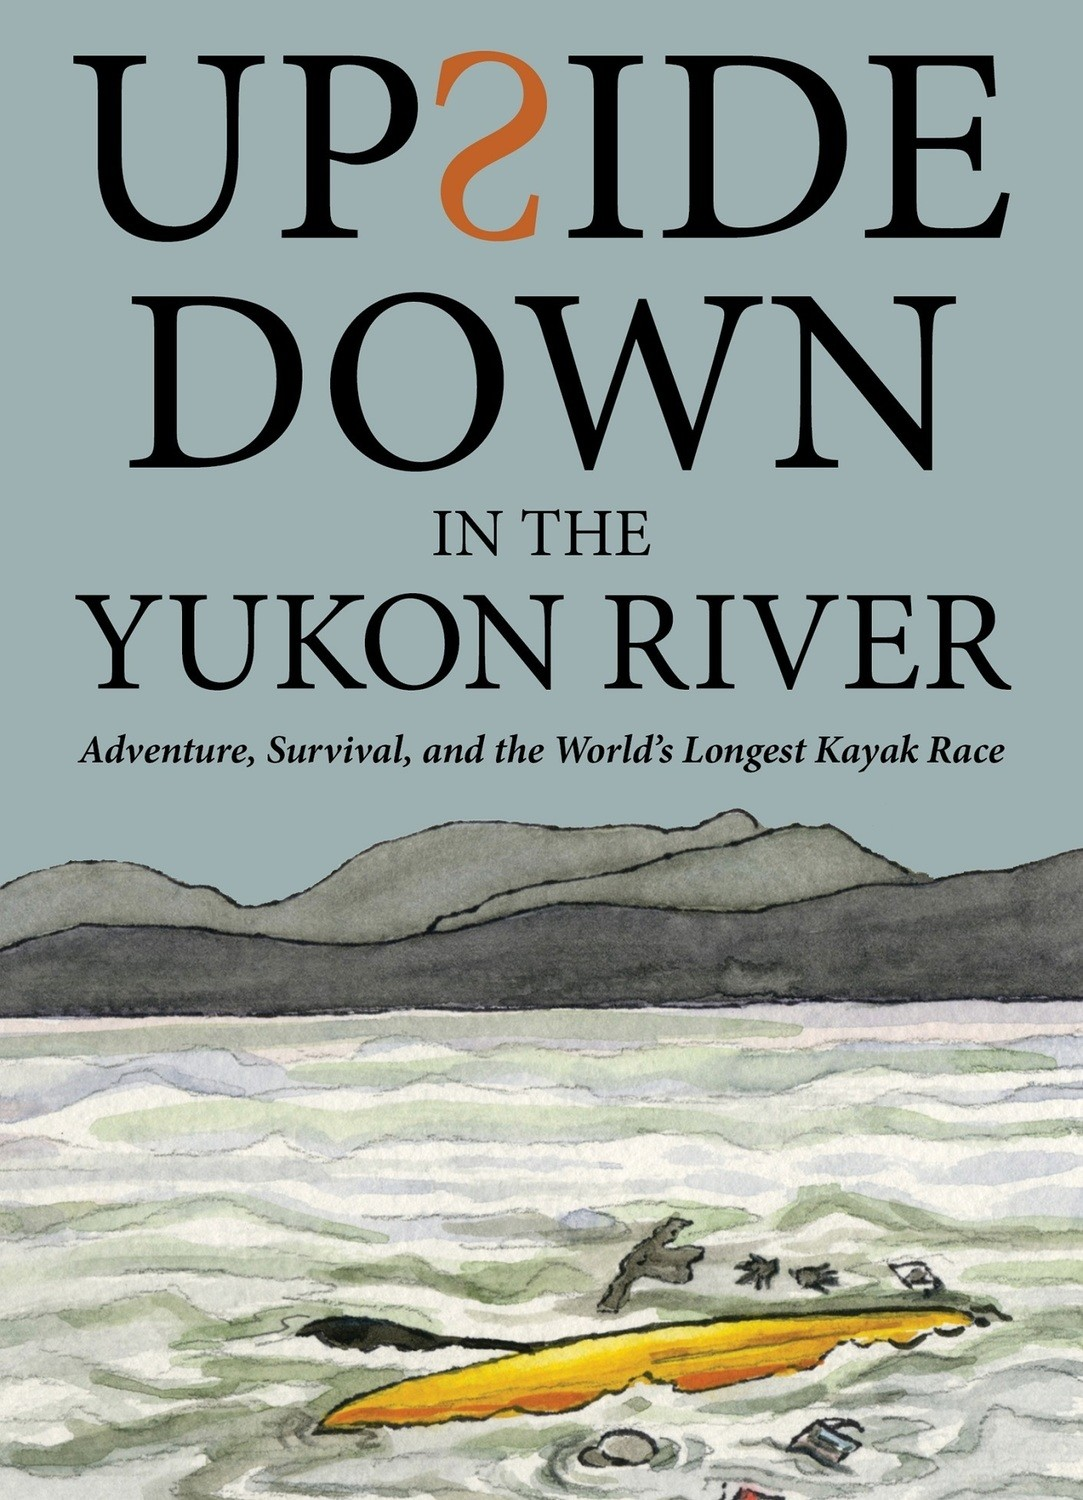 Upside Down in the Yukon River - Audiobook, written and narrated by Steve Cannon